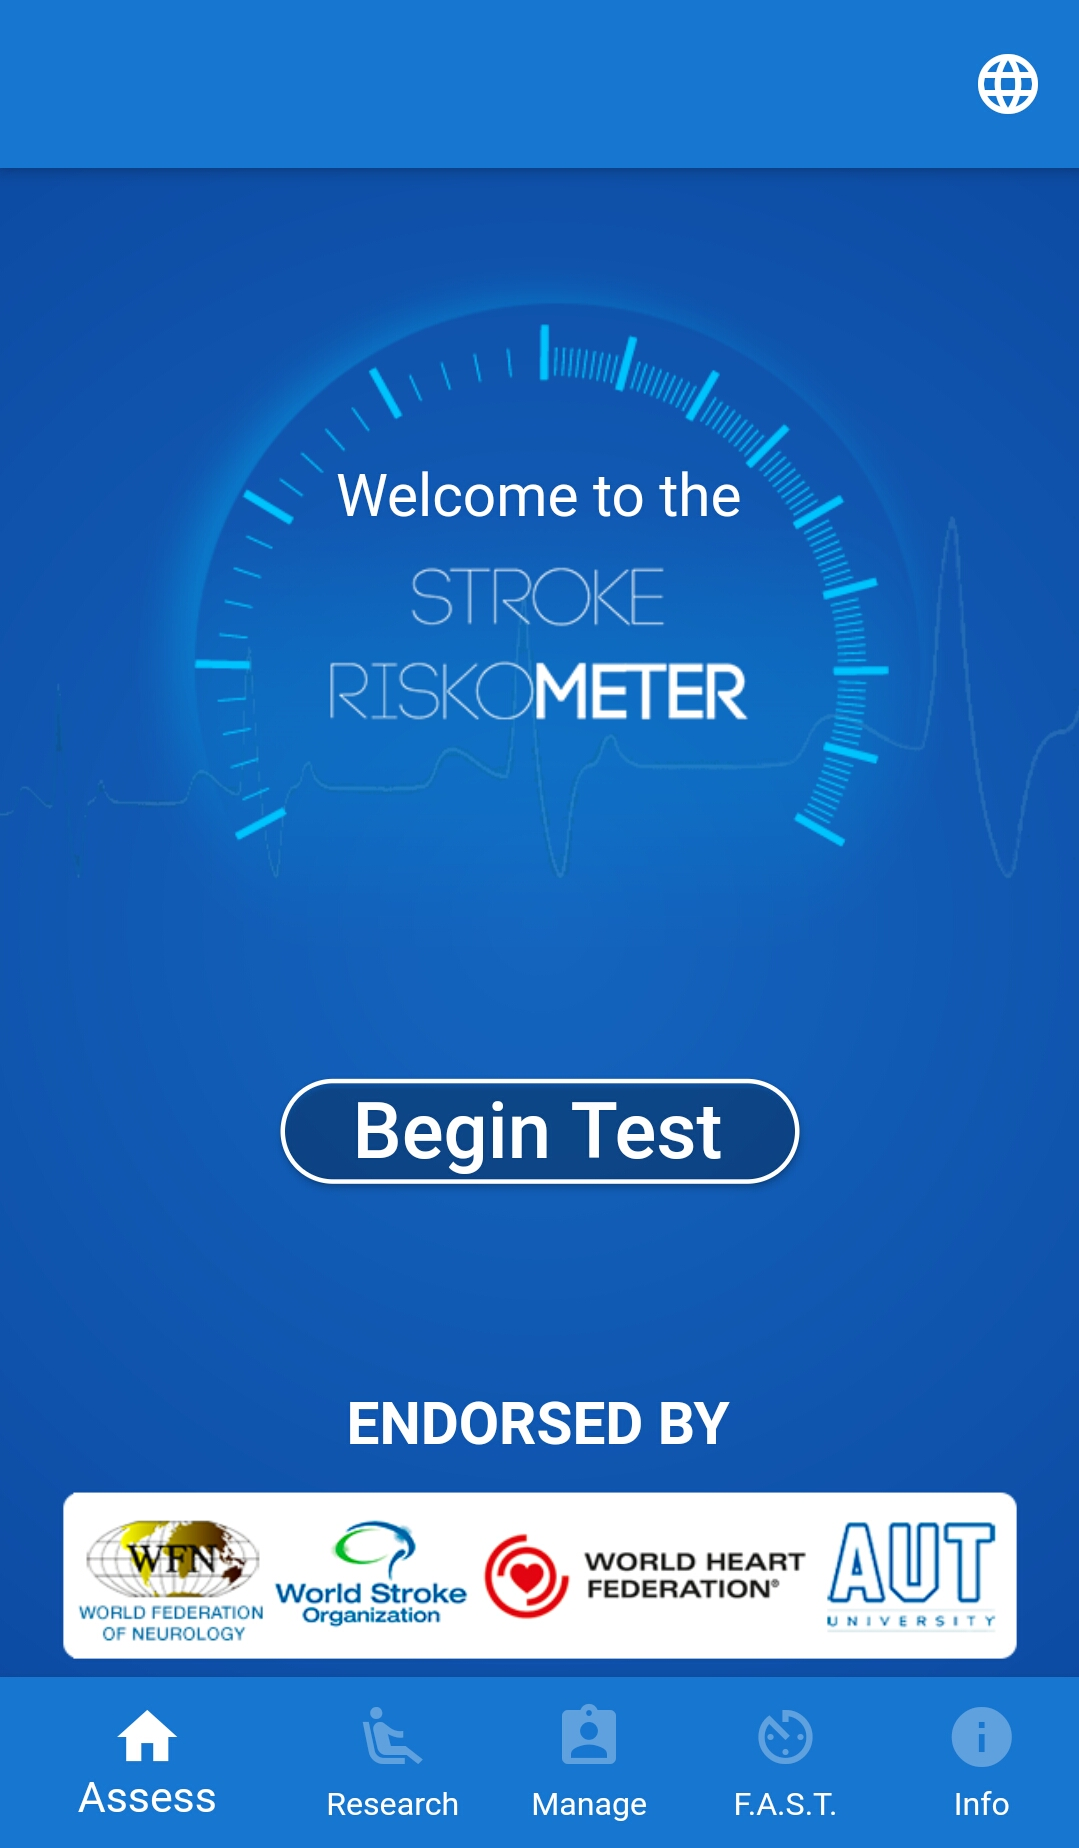 Screenshot of the Stroke Riskometer